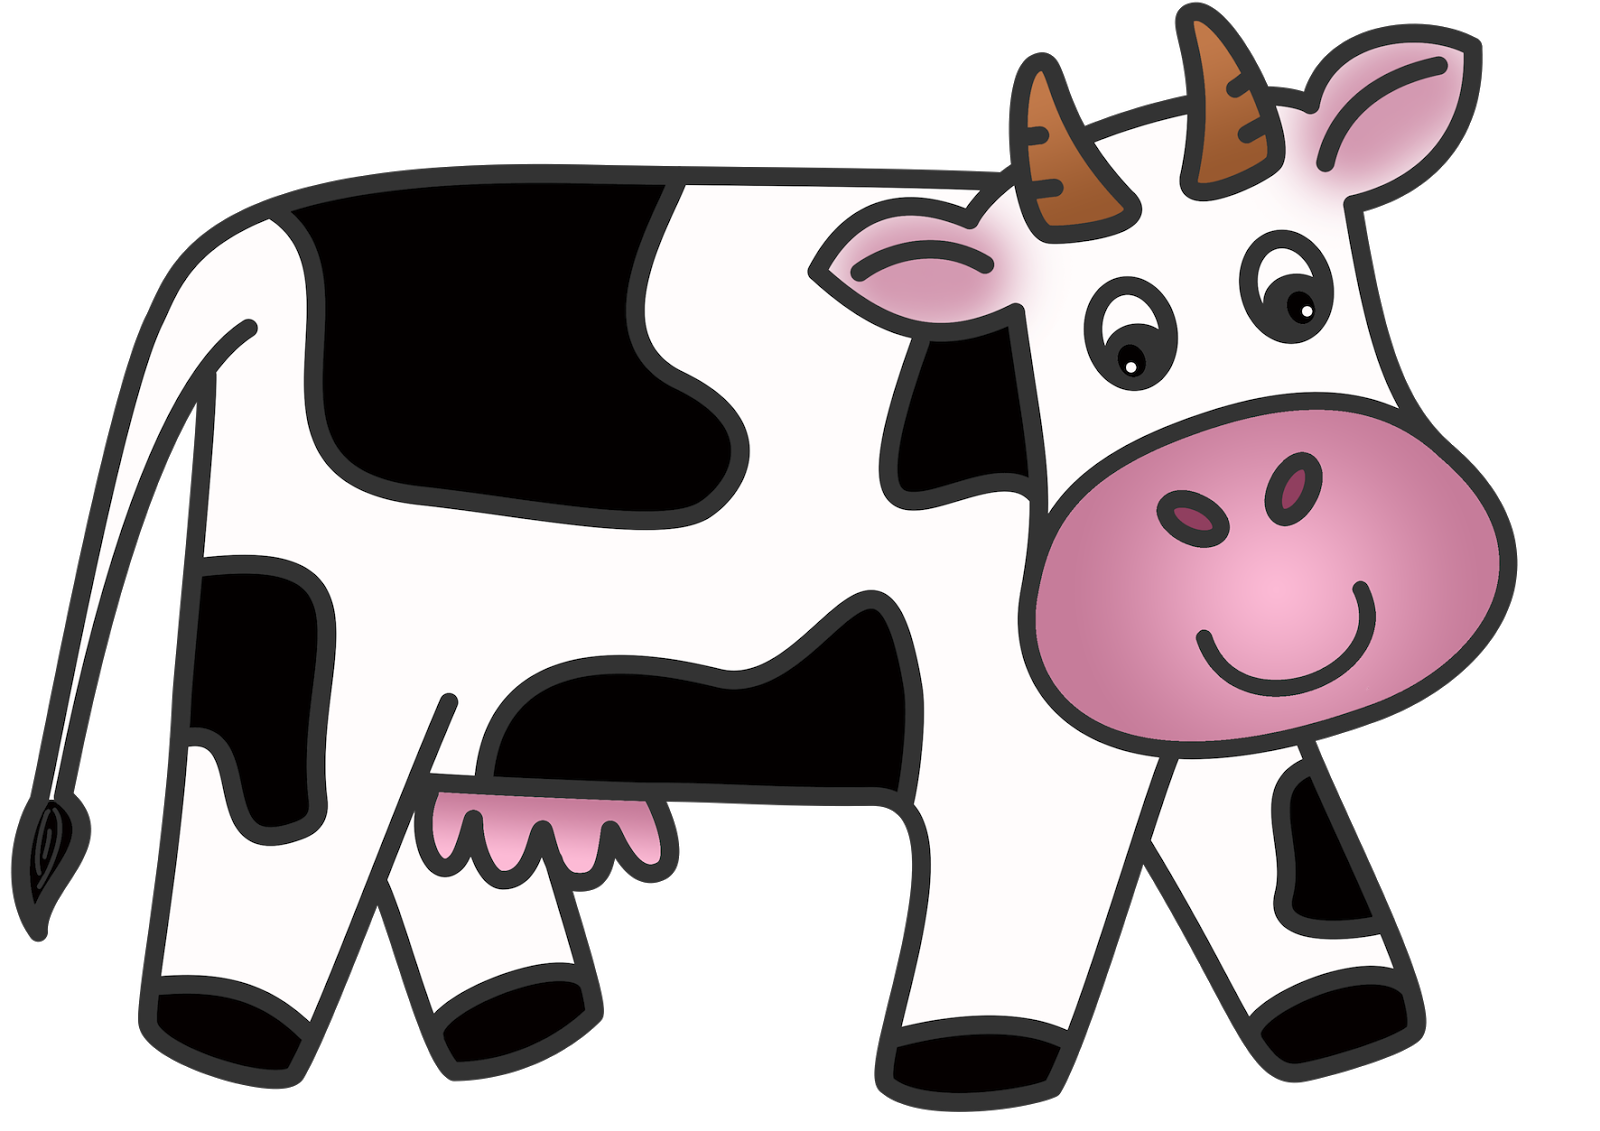 Free cute cow clipart svg freeuse download Free Cow Cliparts, Download Free Clip Art, Free Clip Art on Clipart ... svg freeuse download